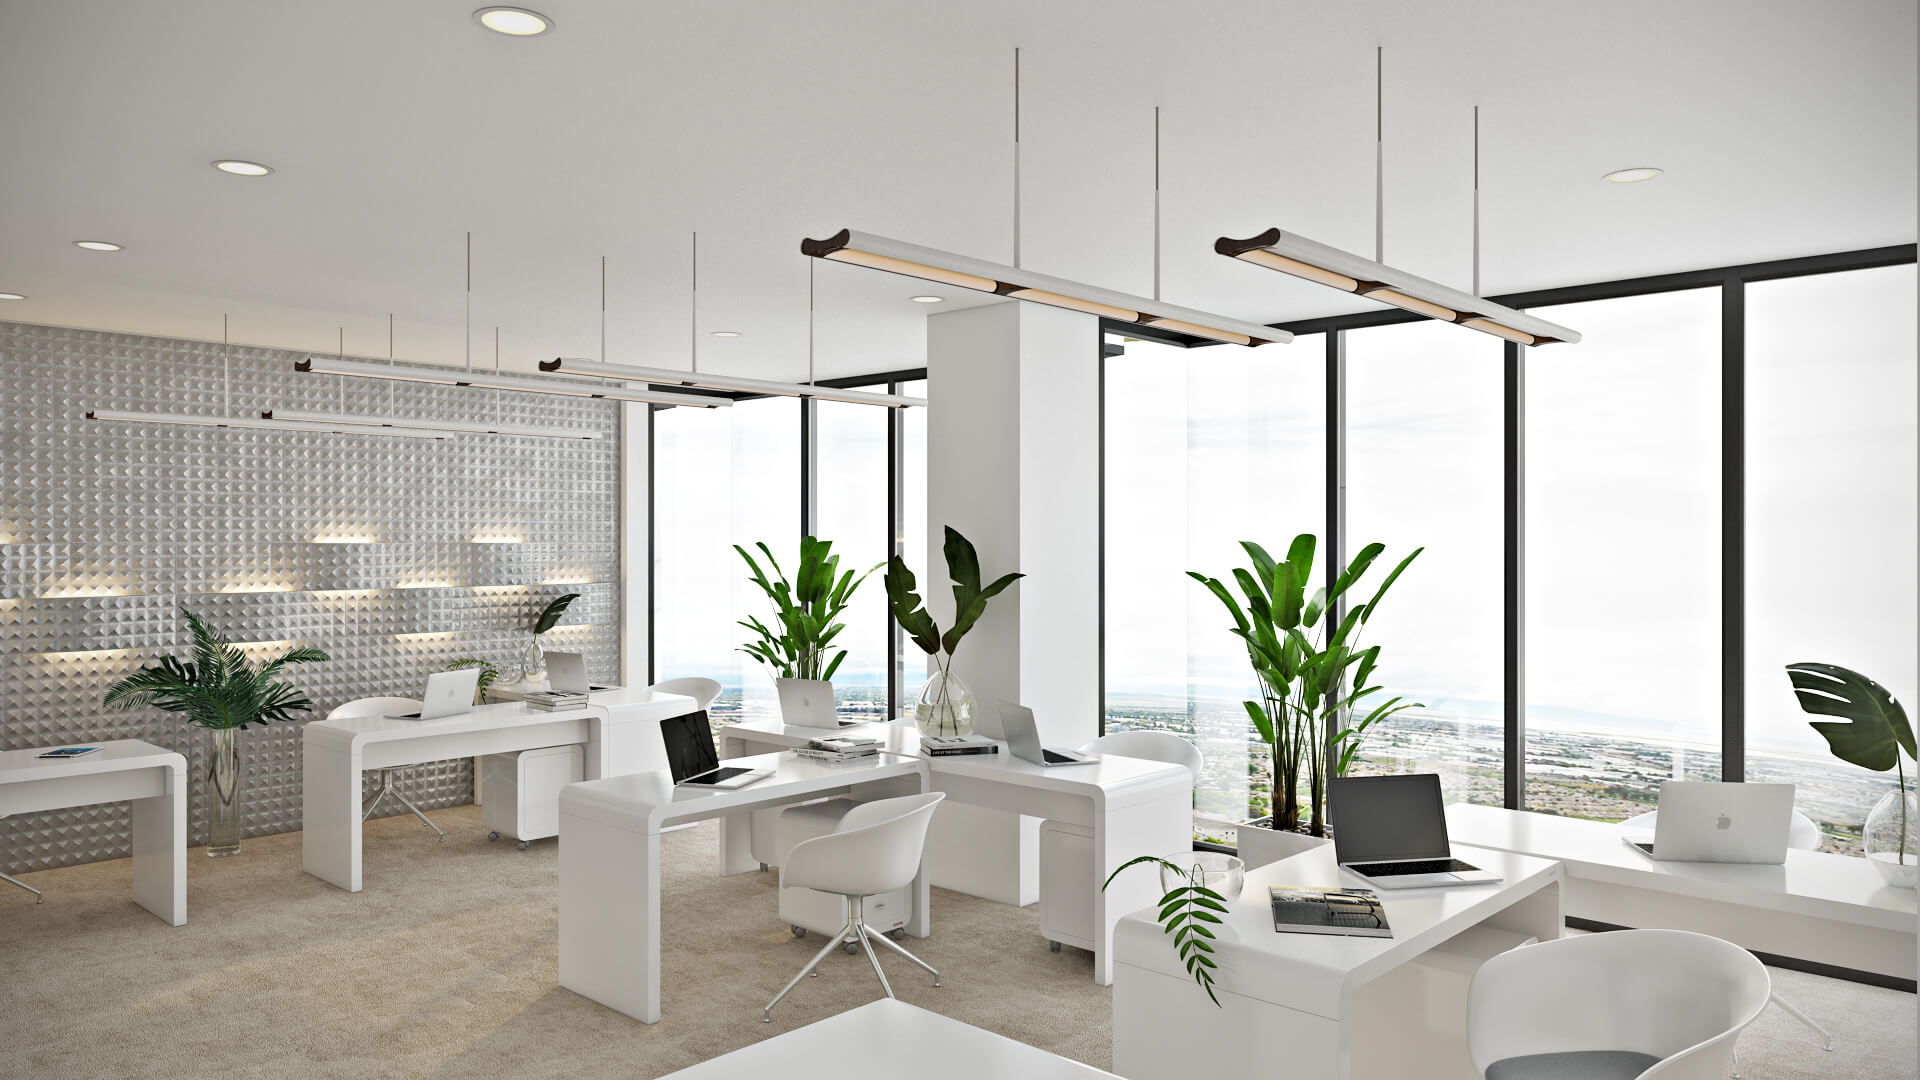 Photoreal Visualization for an Office Space Design